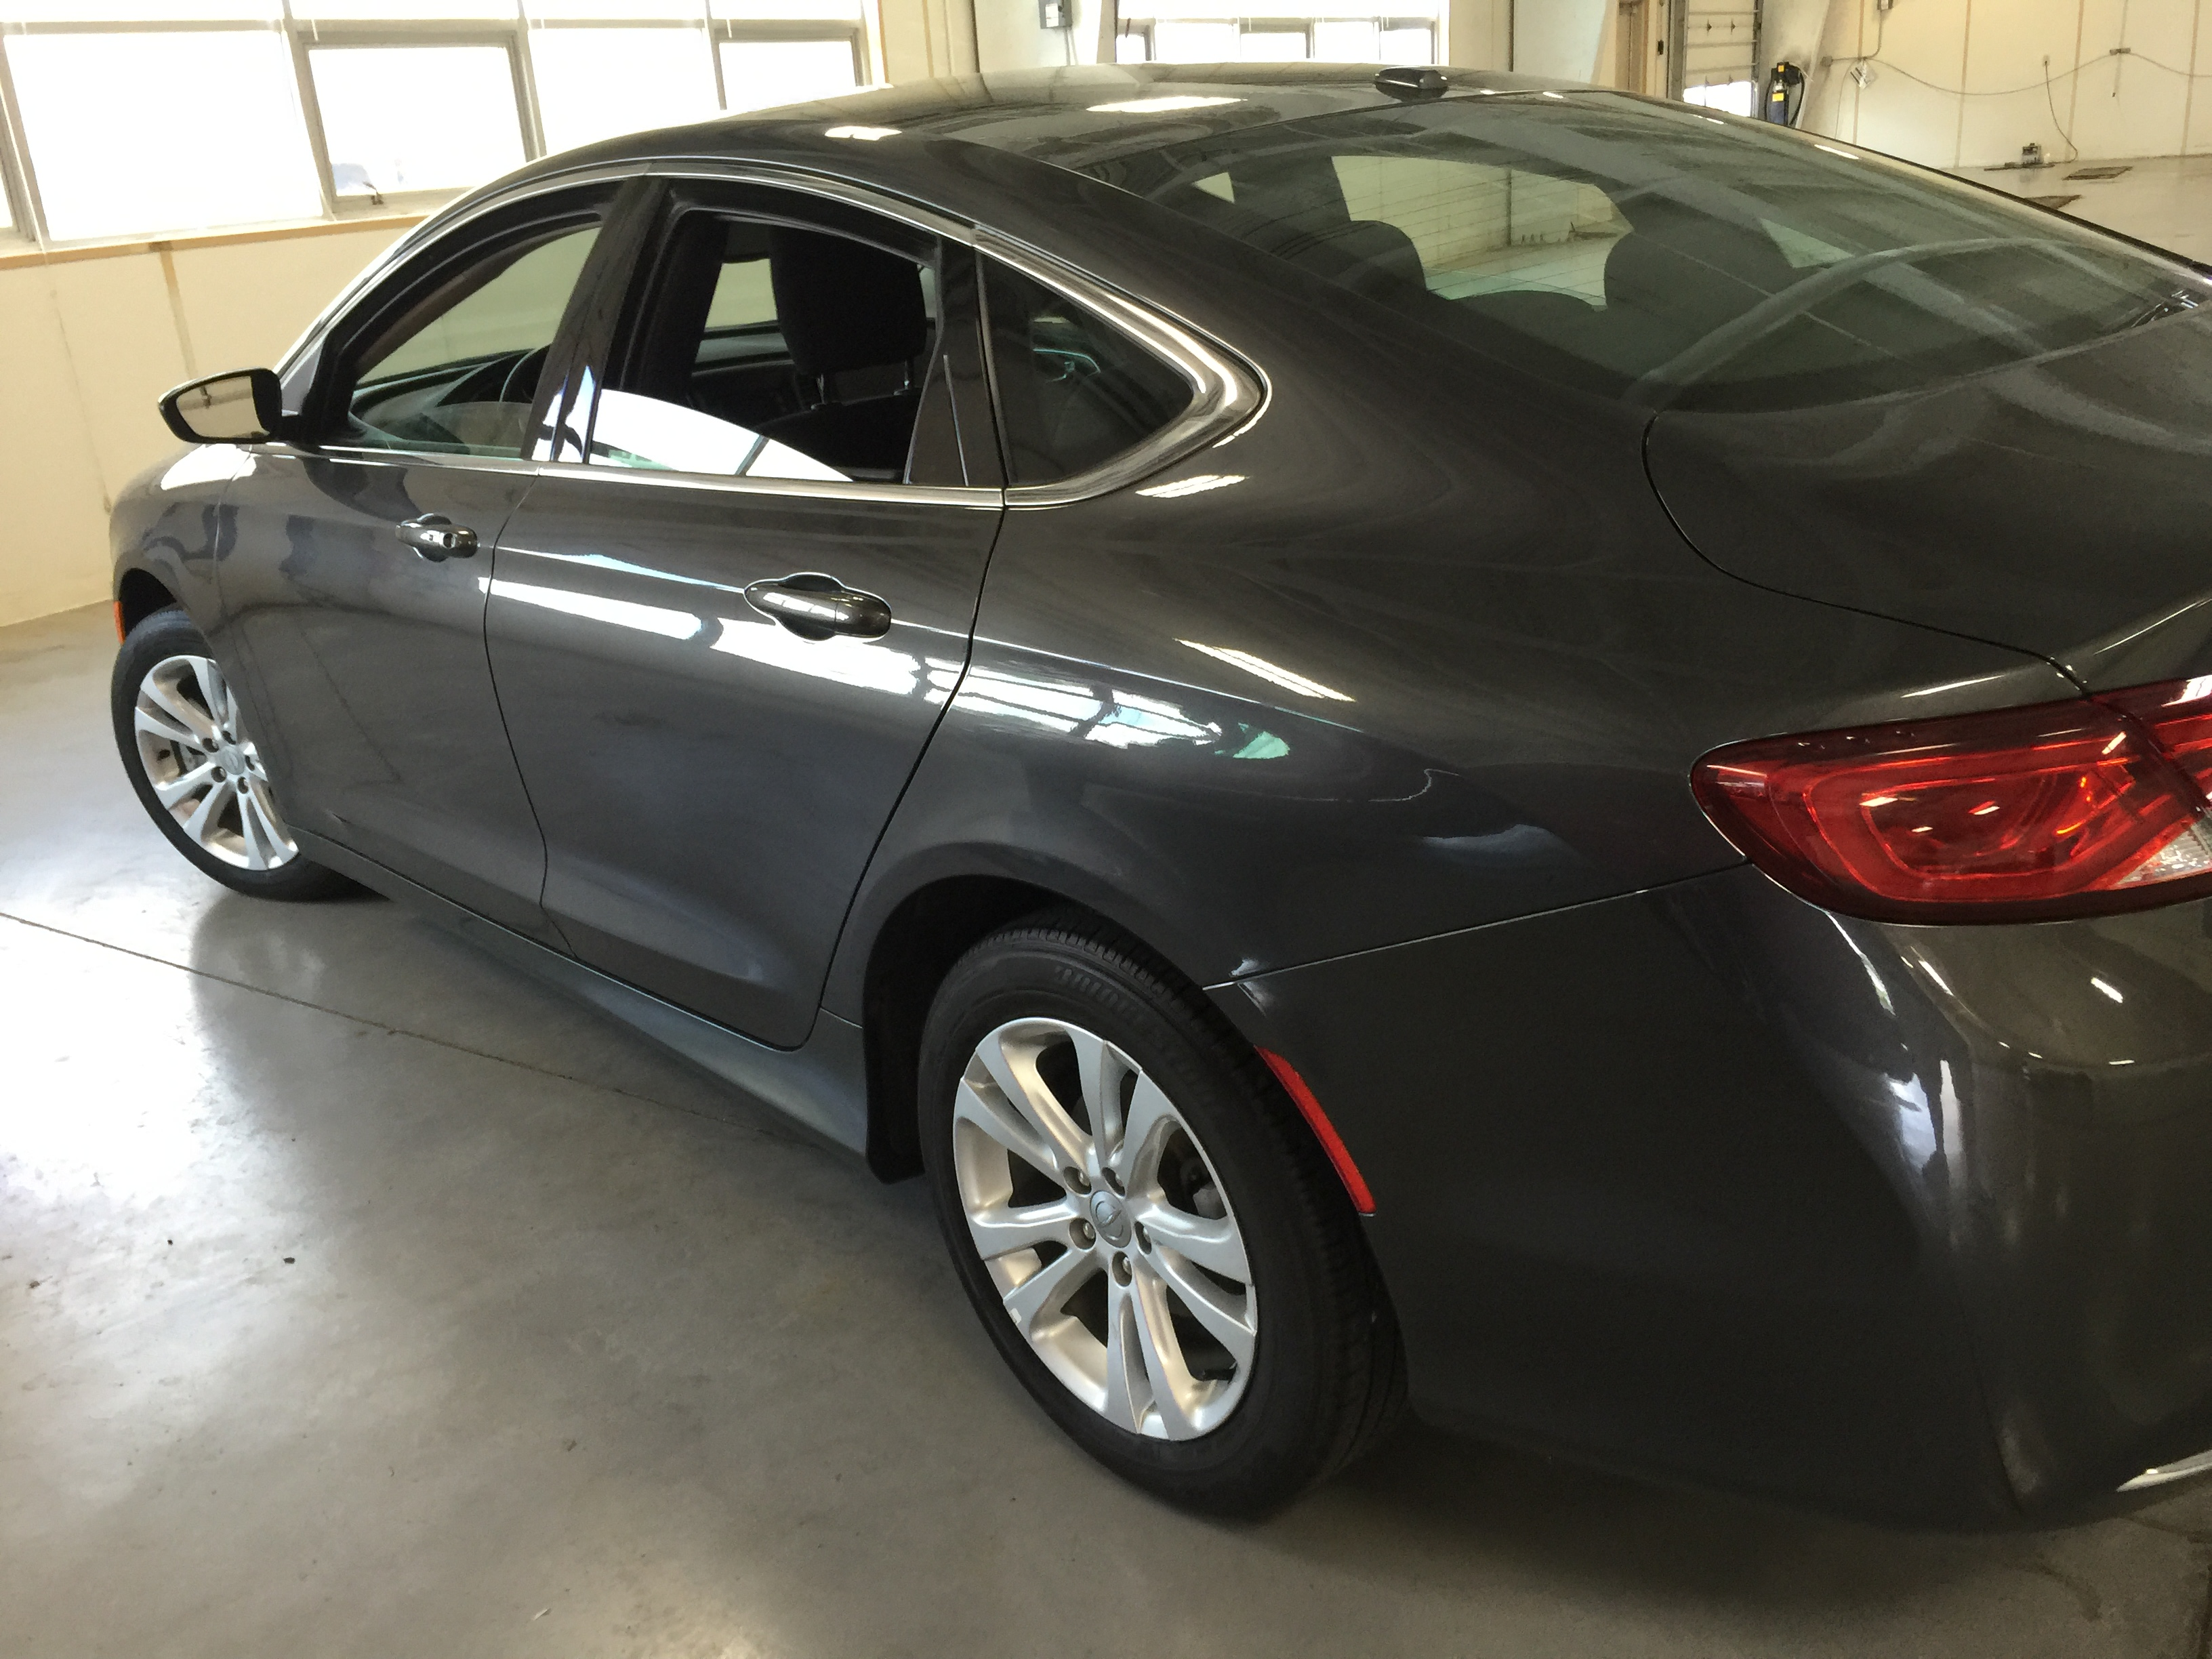 2015 Chrysler 200 Gray Metallic | Dent Removal On Passenger Side Rear Door. Work was done by Michael Bocek from 217dent.com. Go to http://217dent.com an estimate, or for more information about paintless dent removal